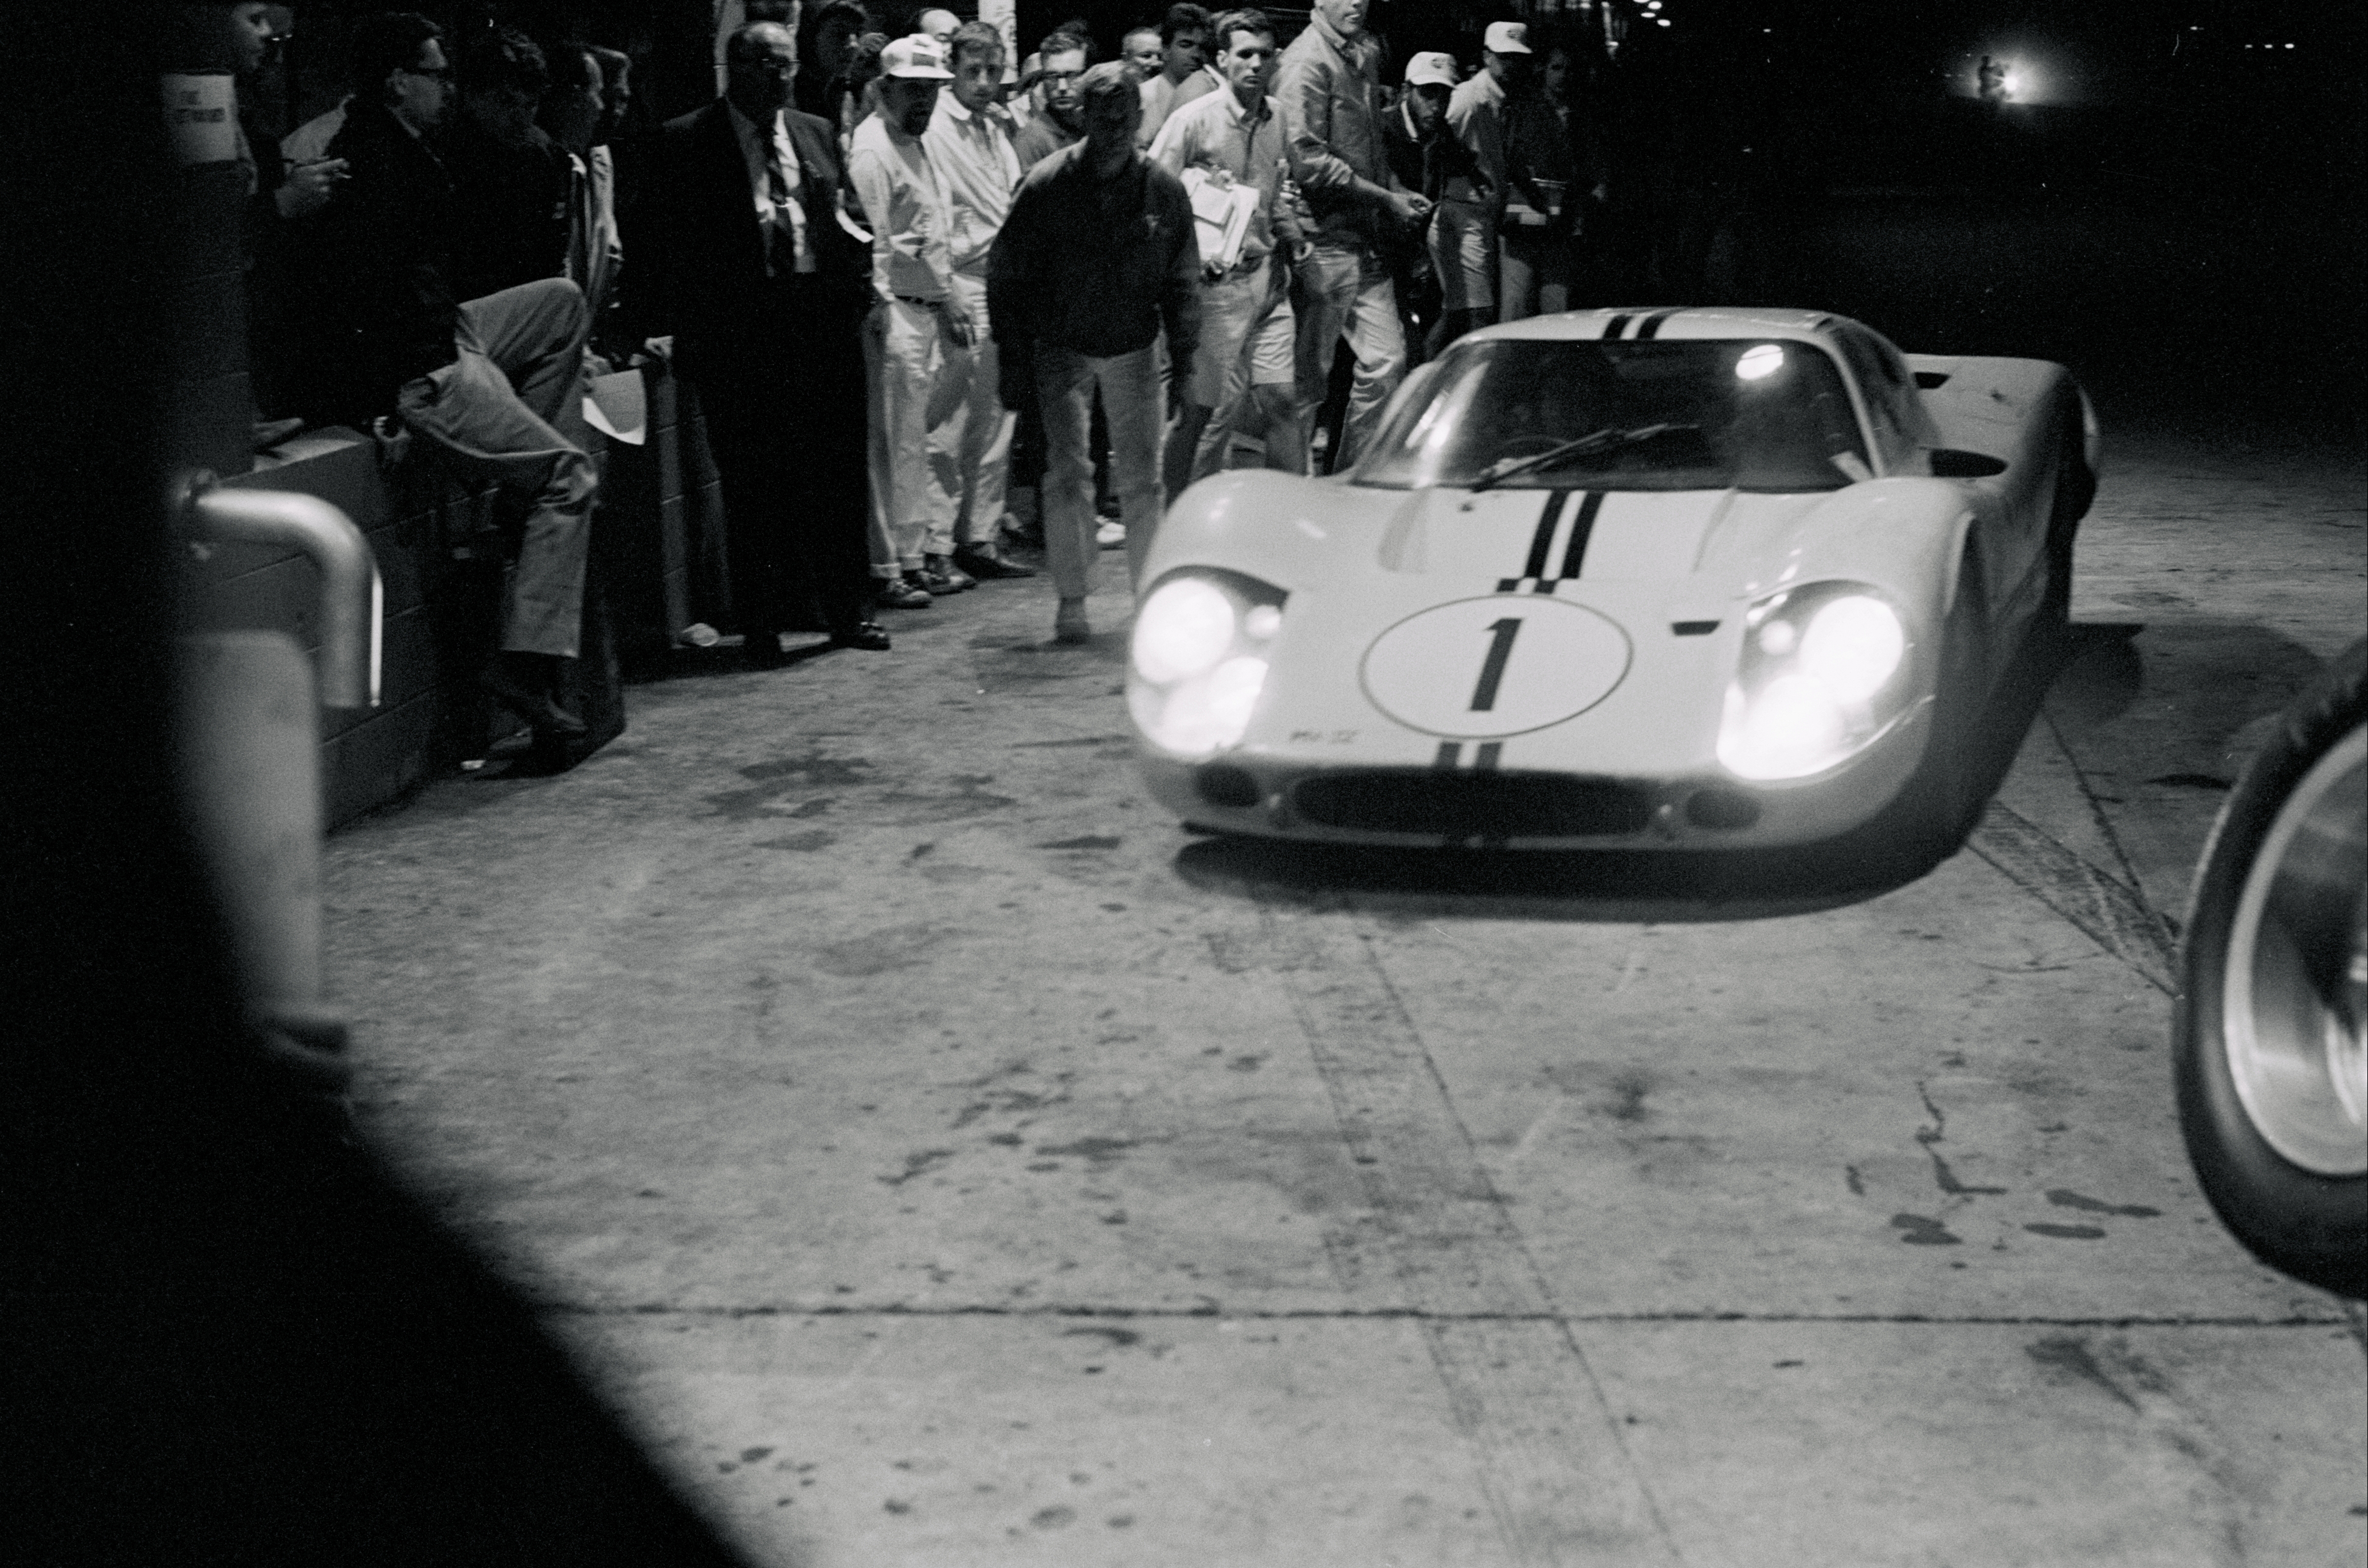 After an embarrassing loss at the 24 Hours of Daytona in 1967, Ford came back strong for the next race at Sebring with the newer Mark IV version of the GT40. The winning Mark IV driven by Mario Andretti and Bruce McLaren.